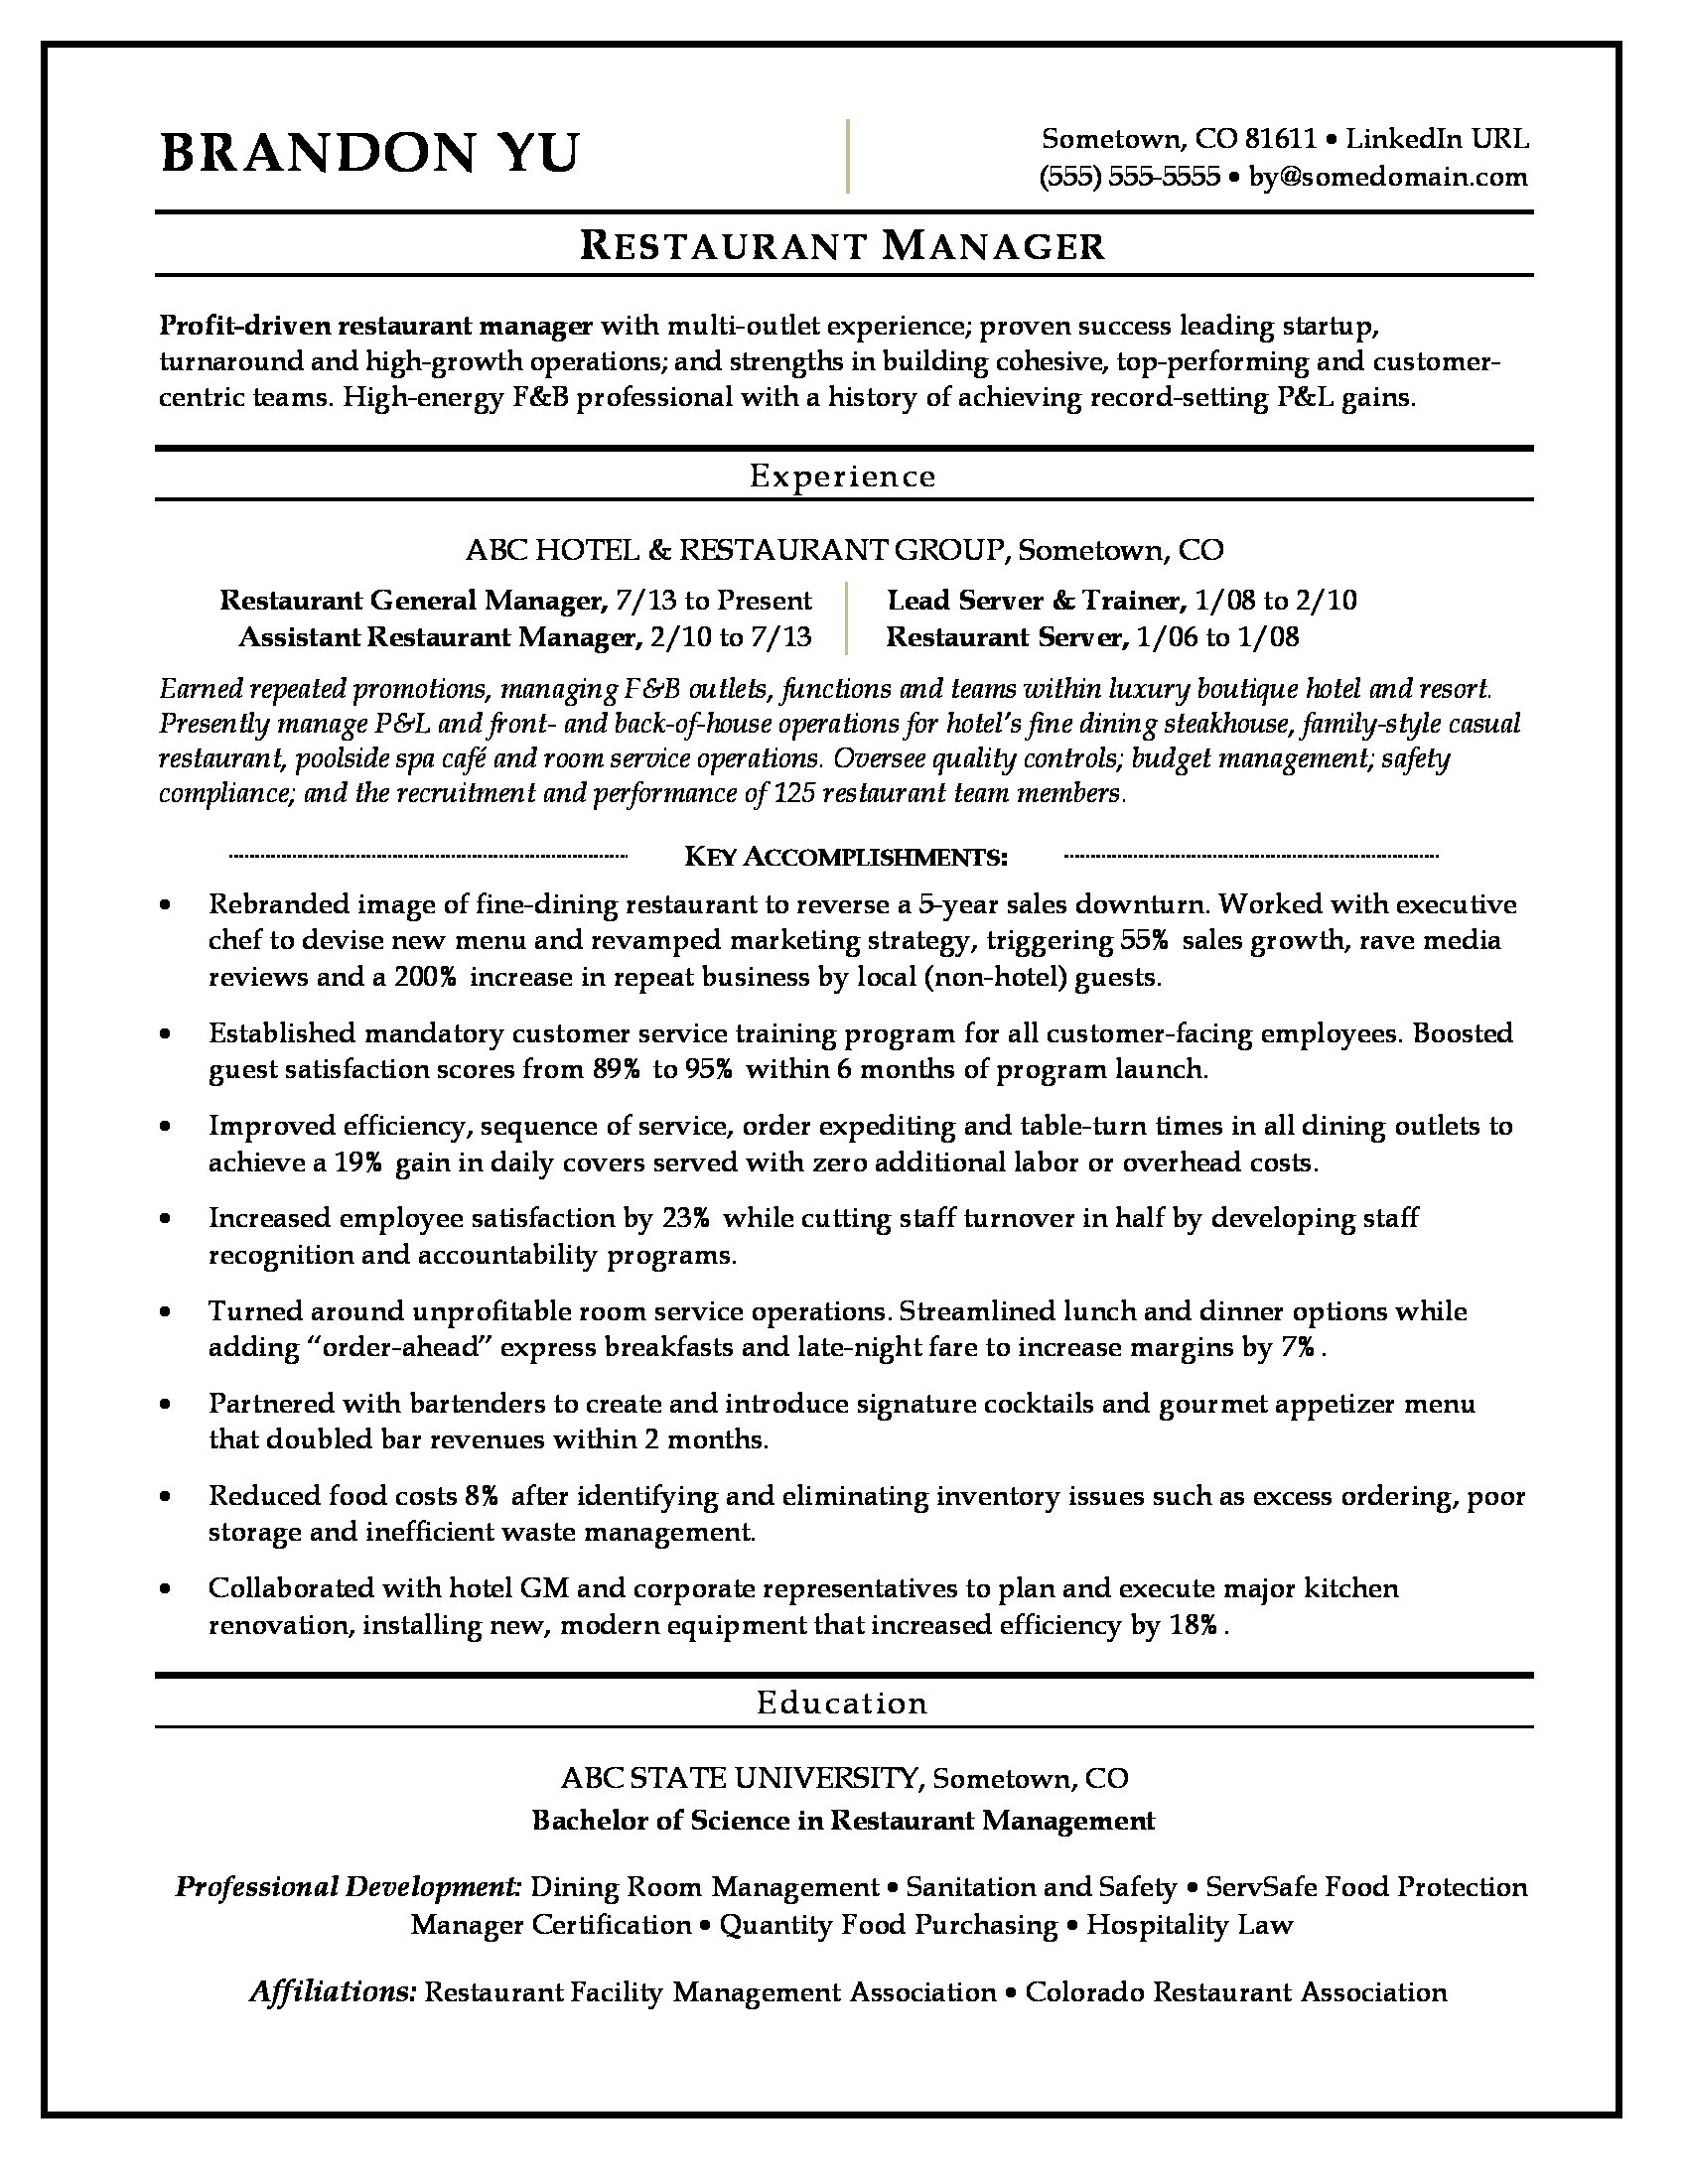 restaurant manager resume sample monster customer service hospitality senior editor Resume Customer Service Hospitality Resume